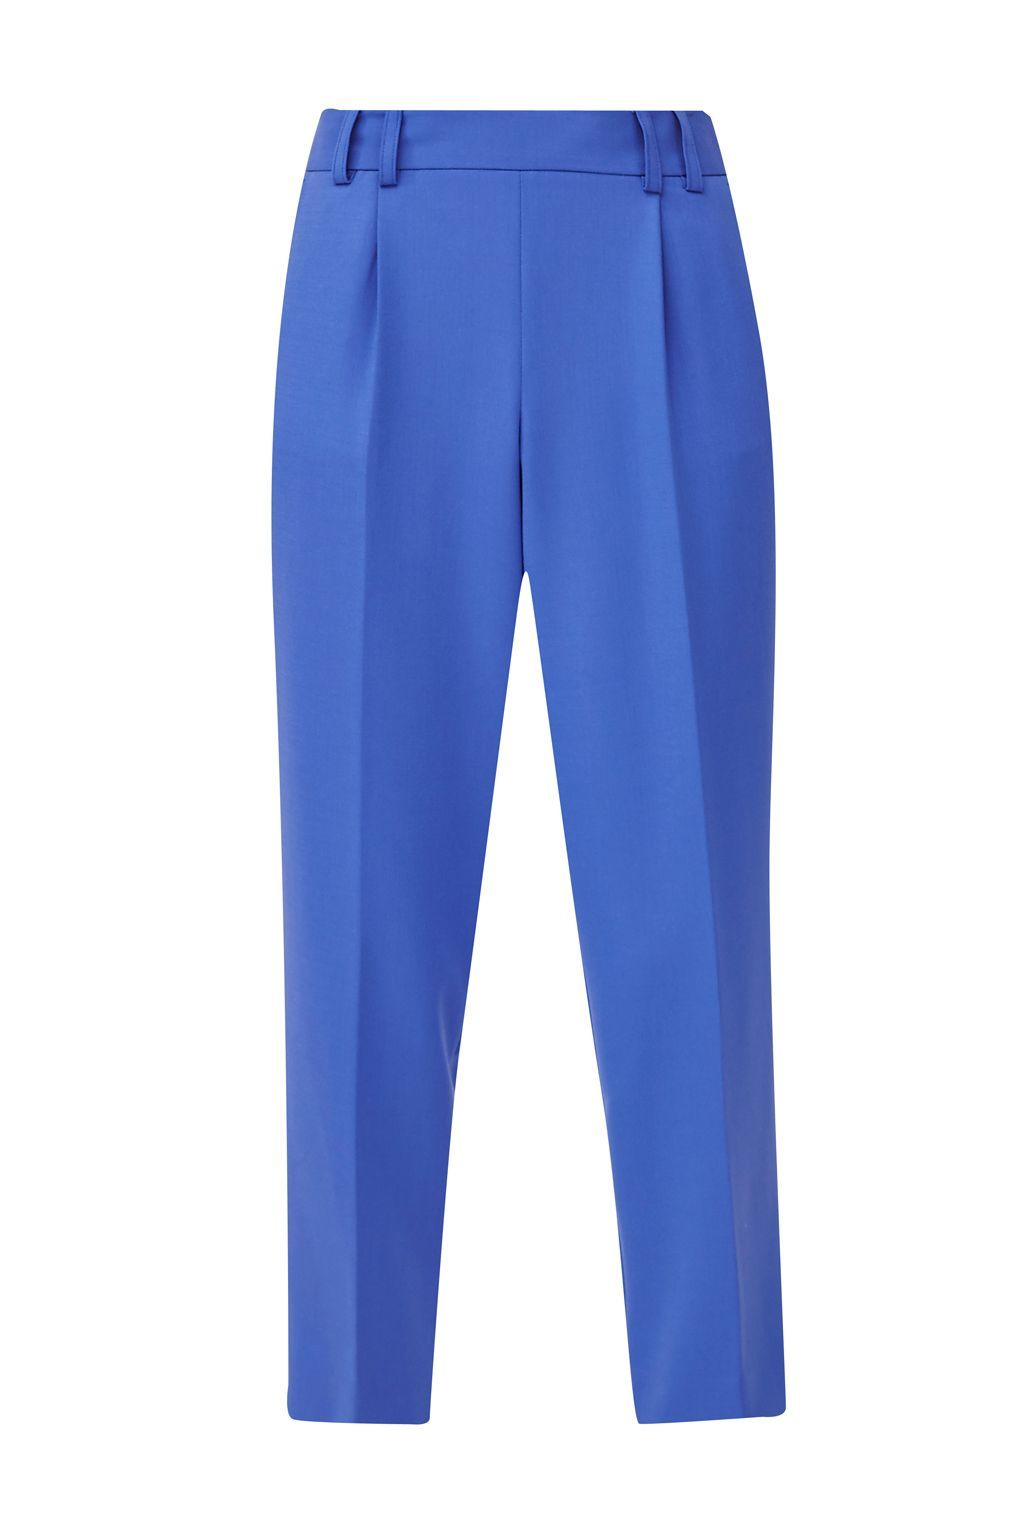 Whisper Light Cropped Peg Trousers, Blue - pattern: plain; style: peg leg; waist: high rise; predominant colour: diva blue; length: ankle length; fibres: polyester/polyamide - mix; occasions: occasion, creative work; fit: tapered; pattern type: fabric; texture group: other - light to midweight; season: a/w 2015